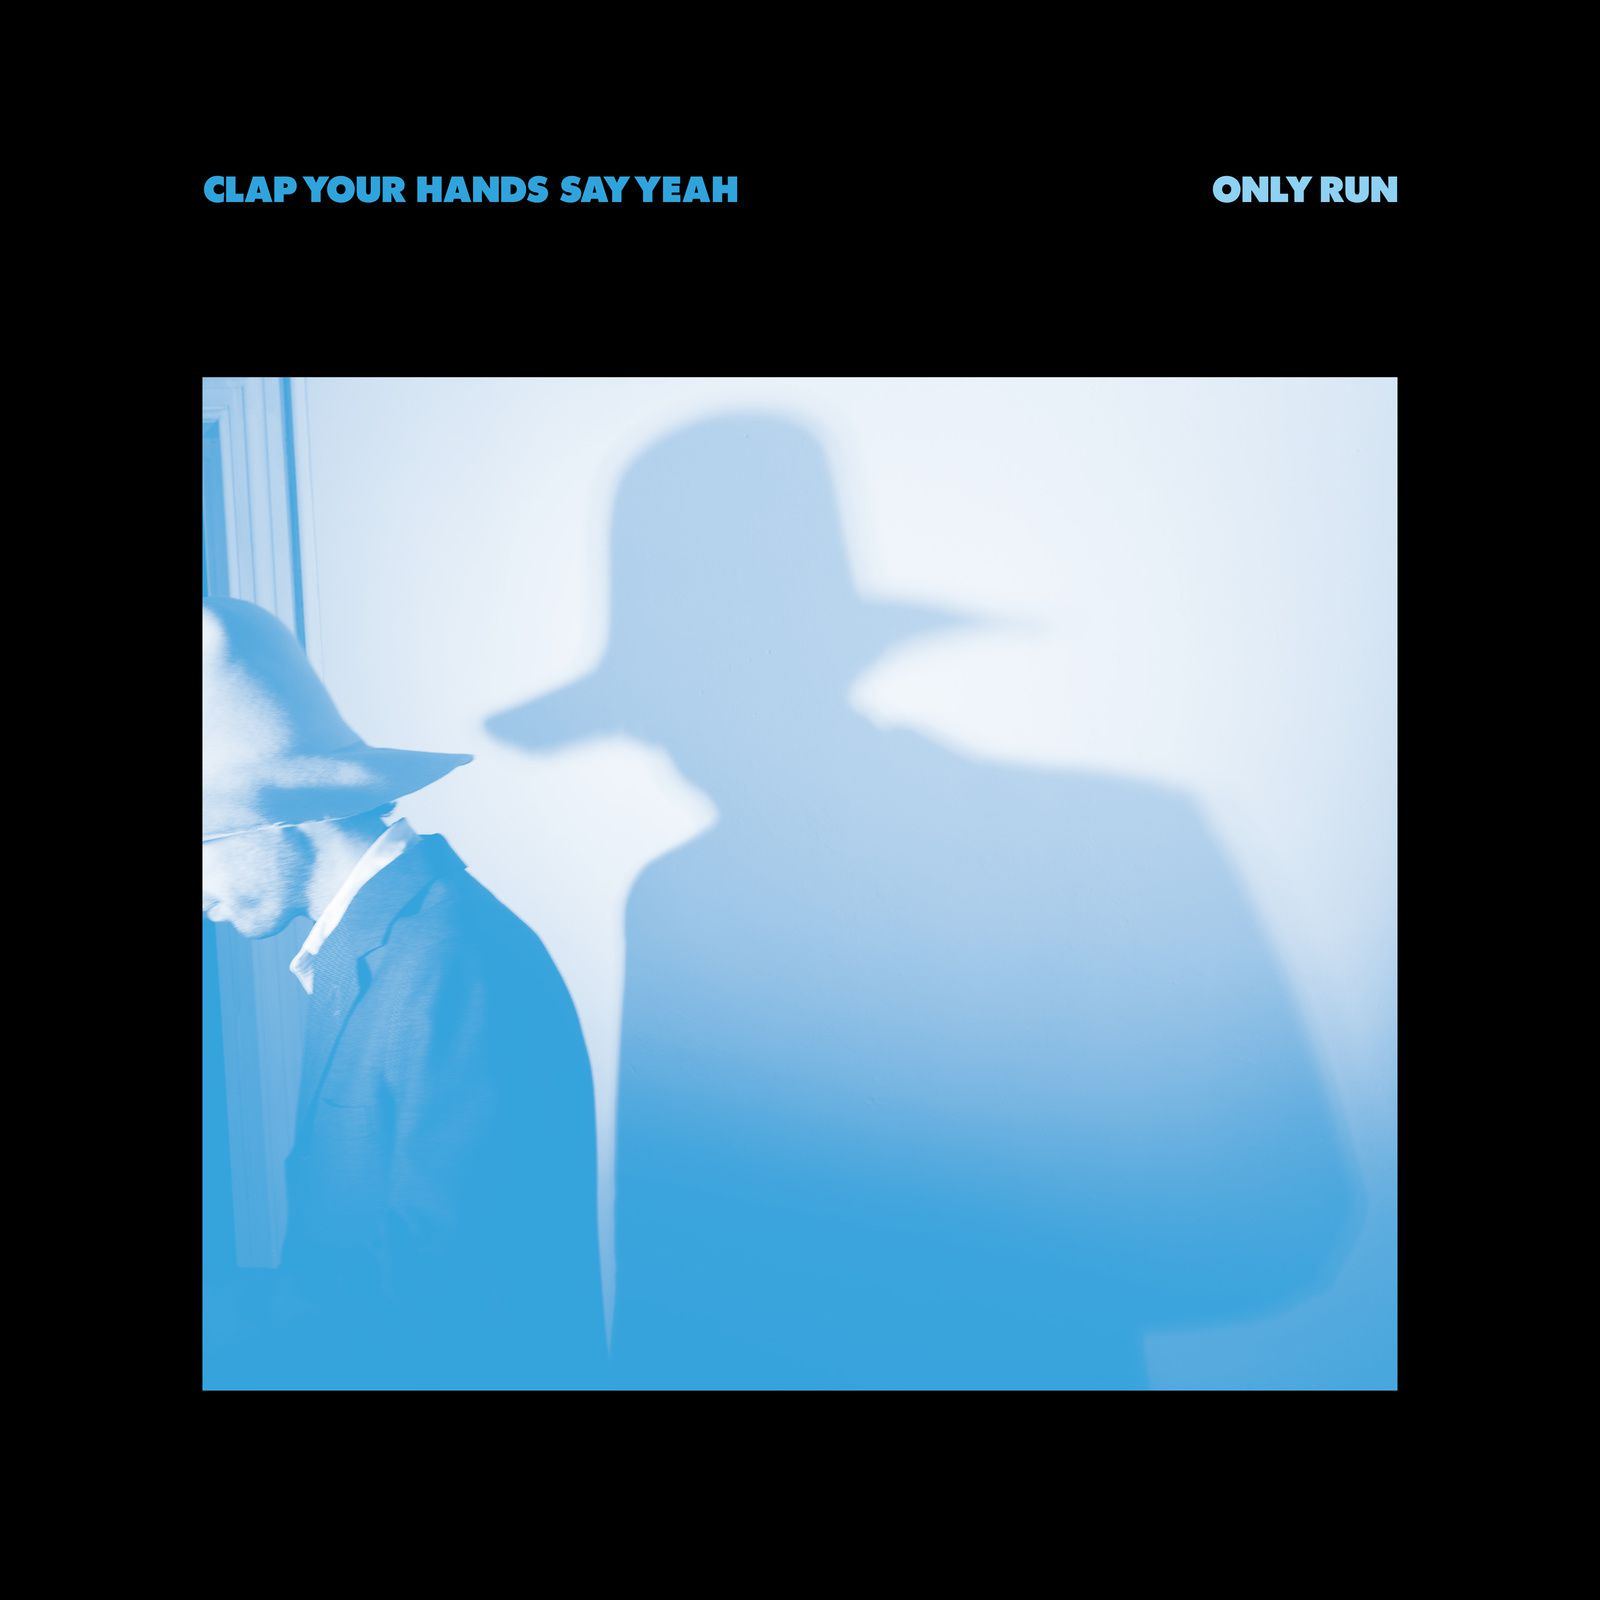 CLAP YOUR HANDS SAY YEAH - Only run (2014)